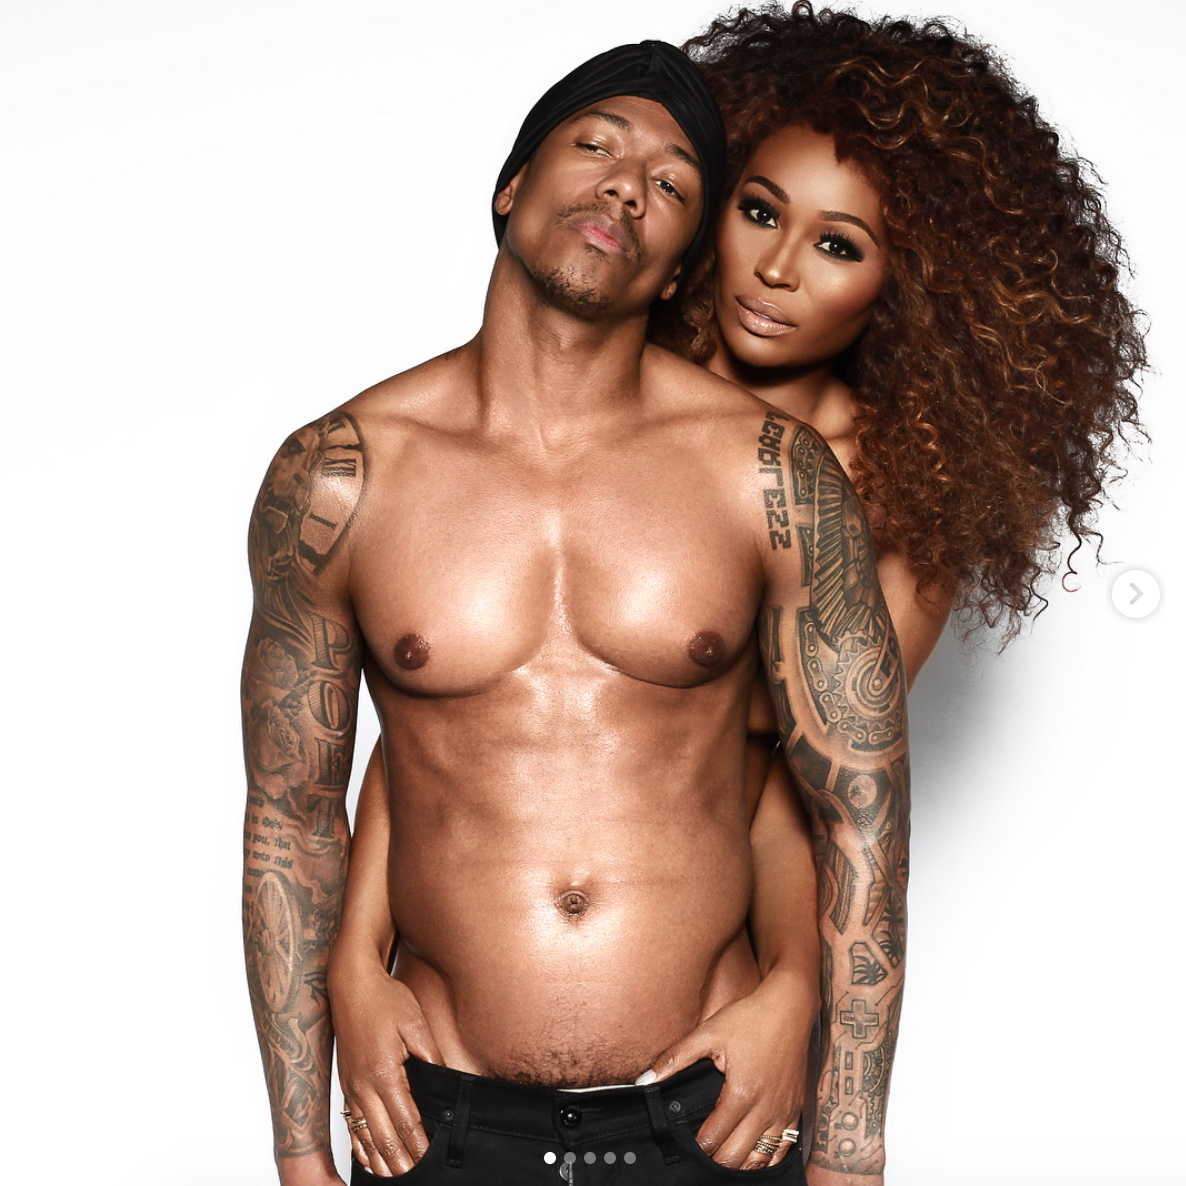 Nick cannon naked ass, free amature couples having sex